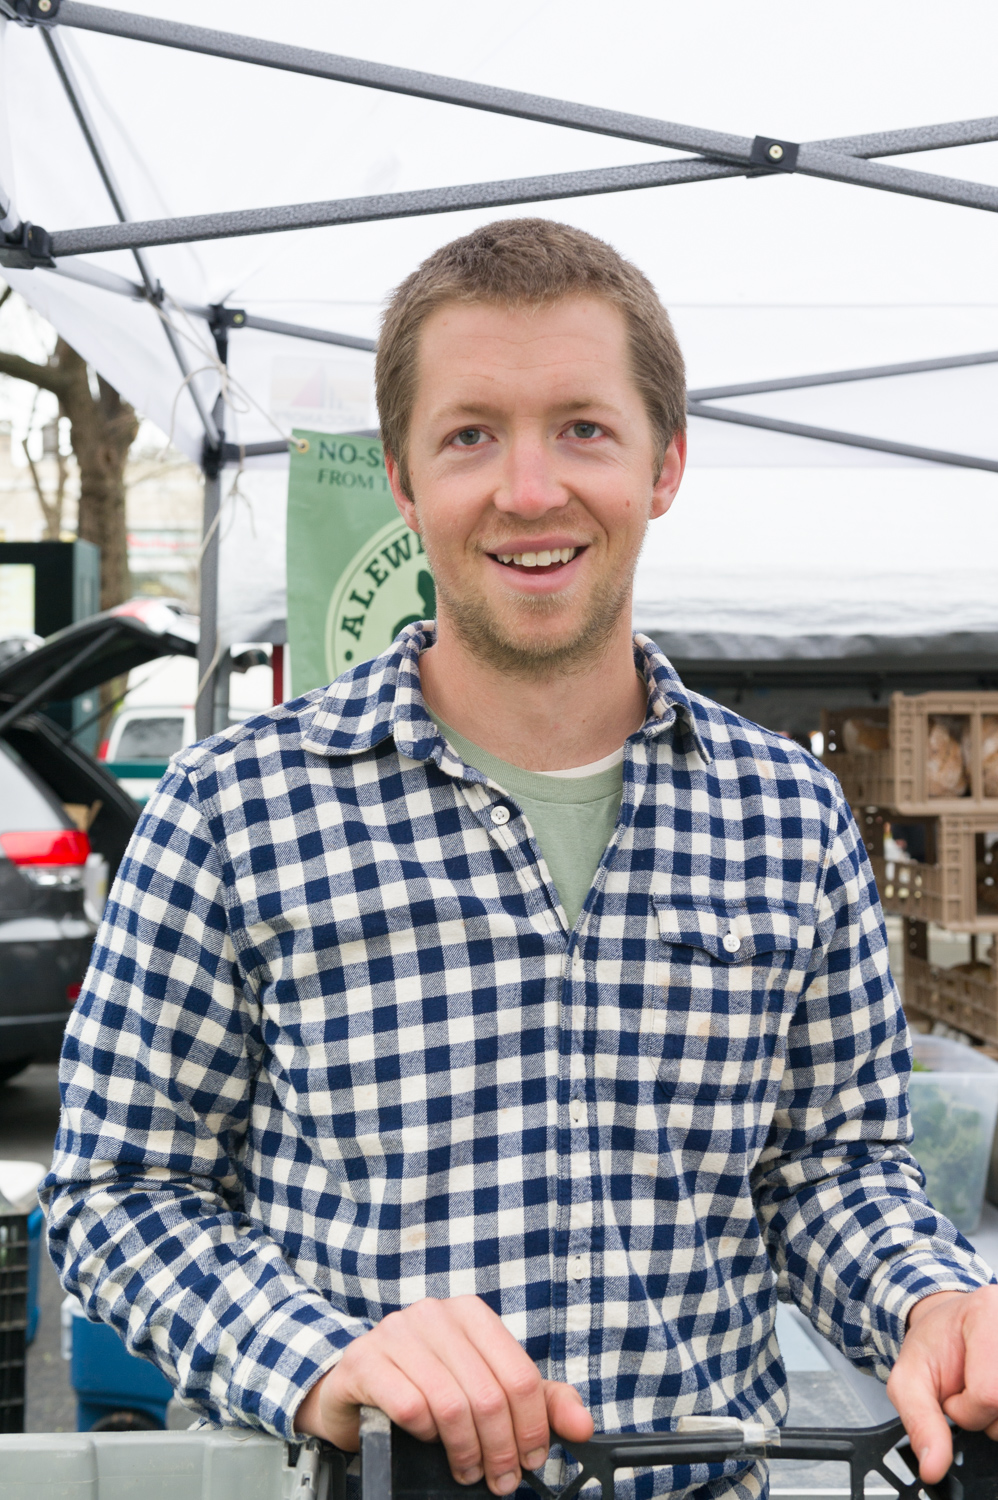 Interview with Tyler Dennis of Ale Wife Farm by Heather Cox of Eat Real Food